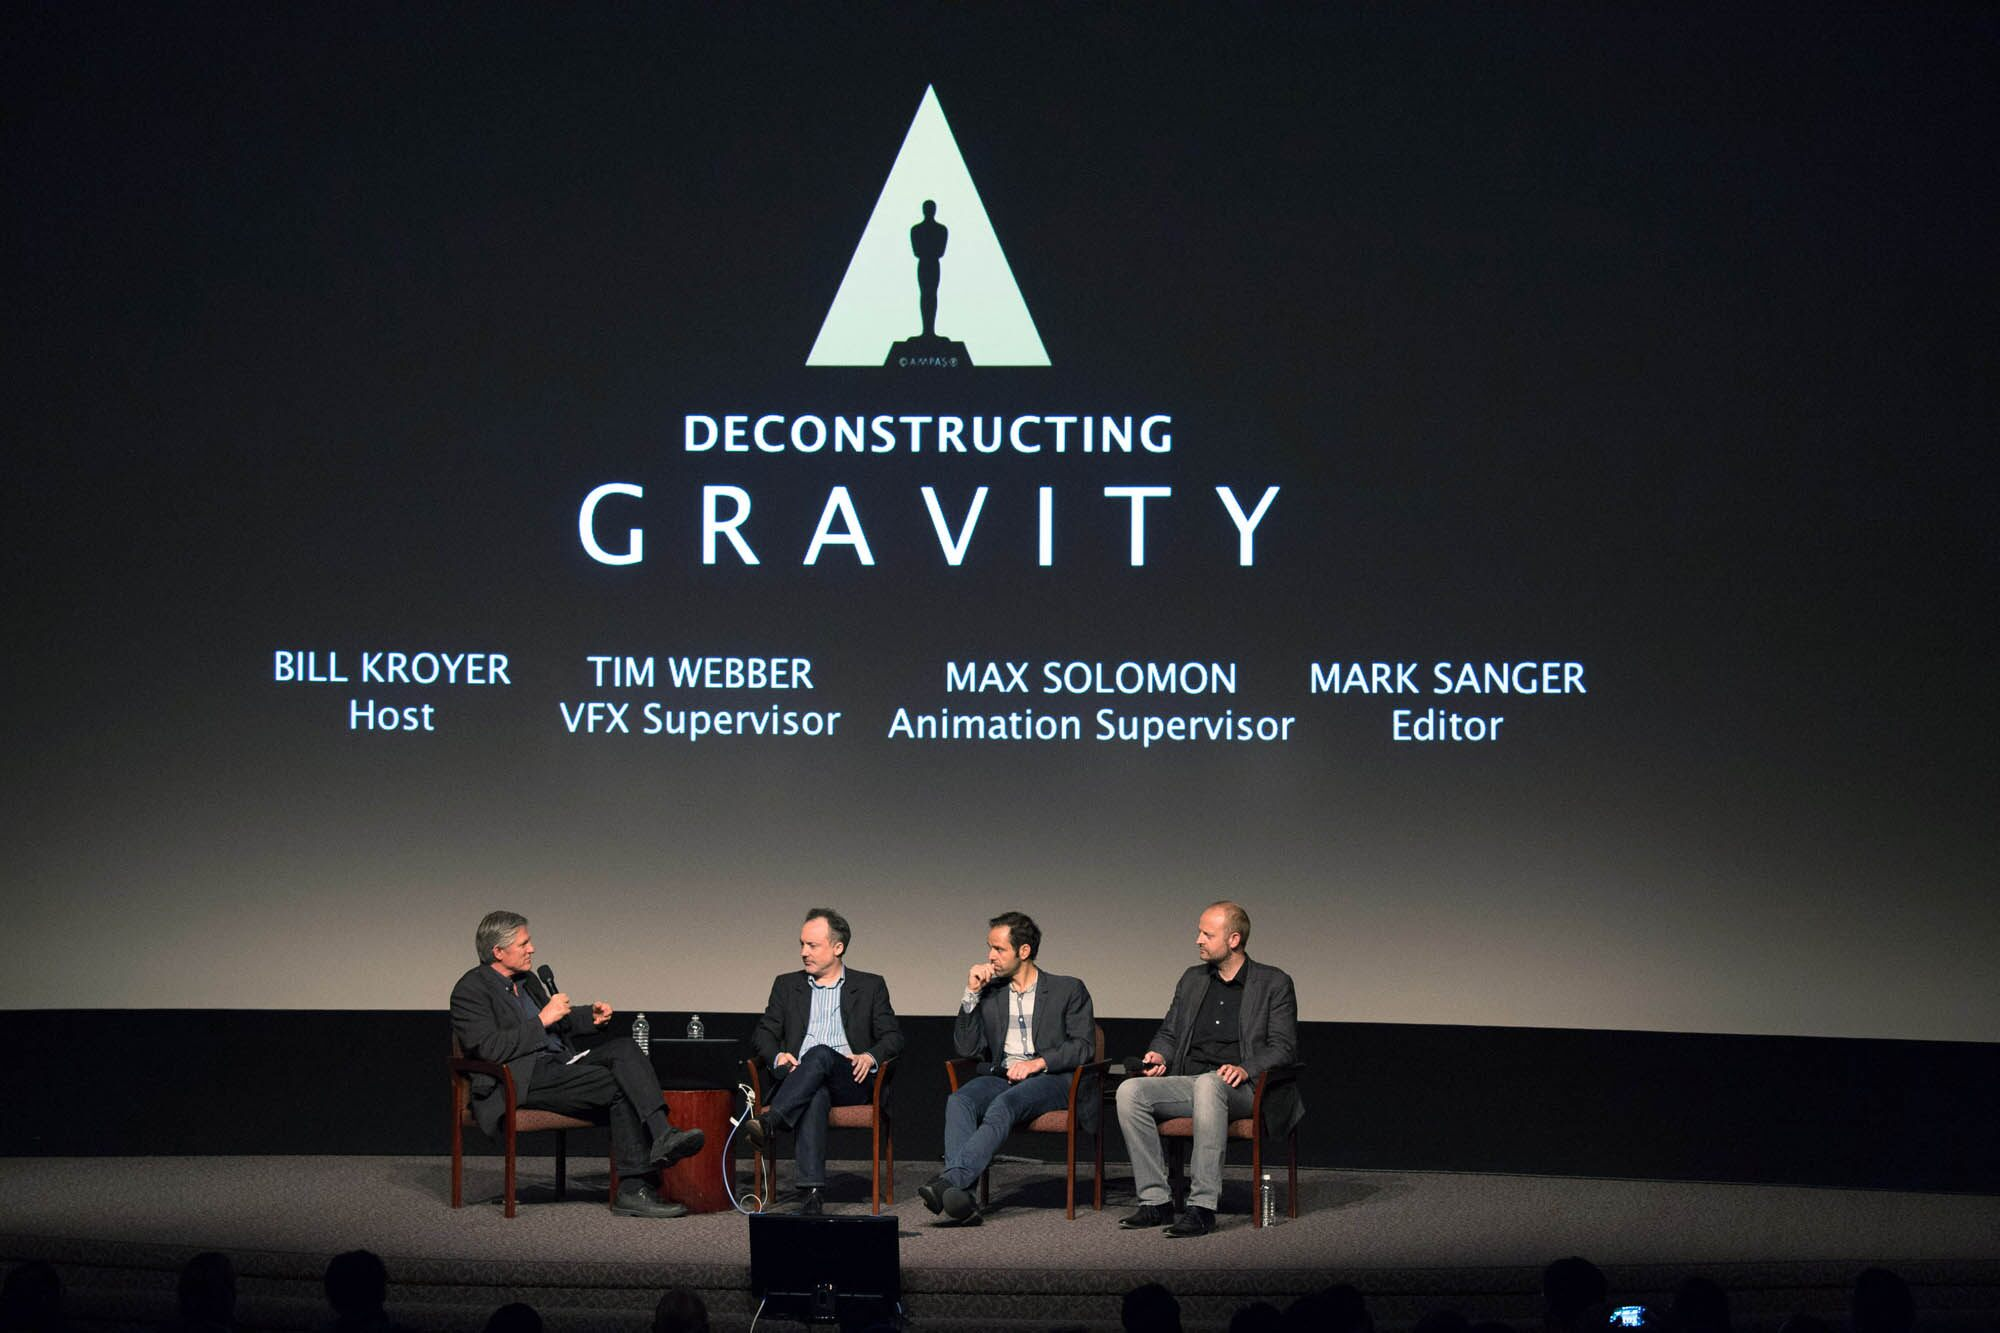 (left to right): Academy Governor Bill Kroyer, Visual Effects Supervisor Tim Webber, Animation Supervisor Max Solomon and Film Editor Mark Sanger.